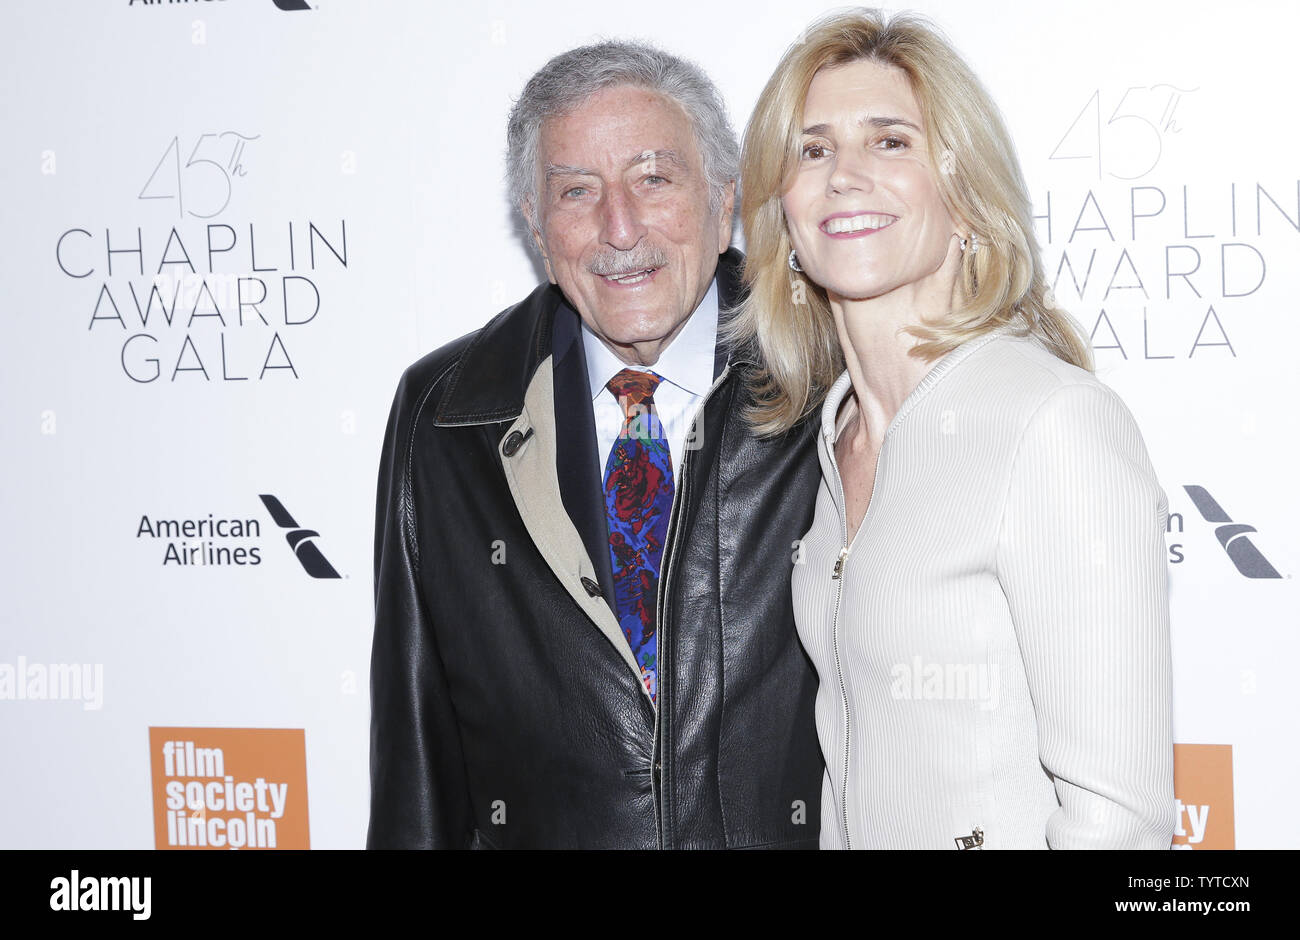 Tony Bennett and Susan Crow arrive on the red carpet at the 45th Chaplin Award Gala at Alice Tully Hall in Lincoln Center on April 30, 2018 in New York City.    Photo by John Angelillo/UPI - Stock Image